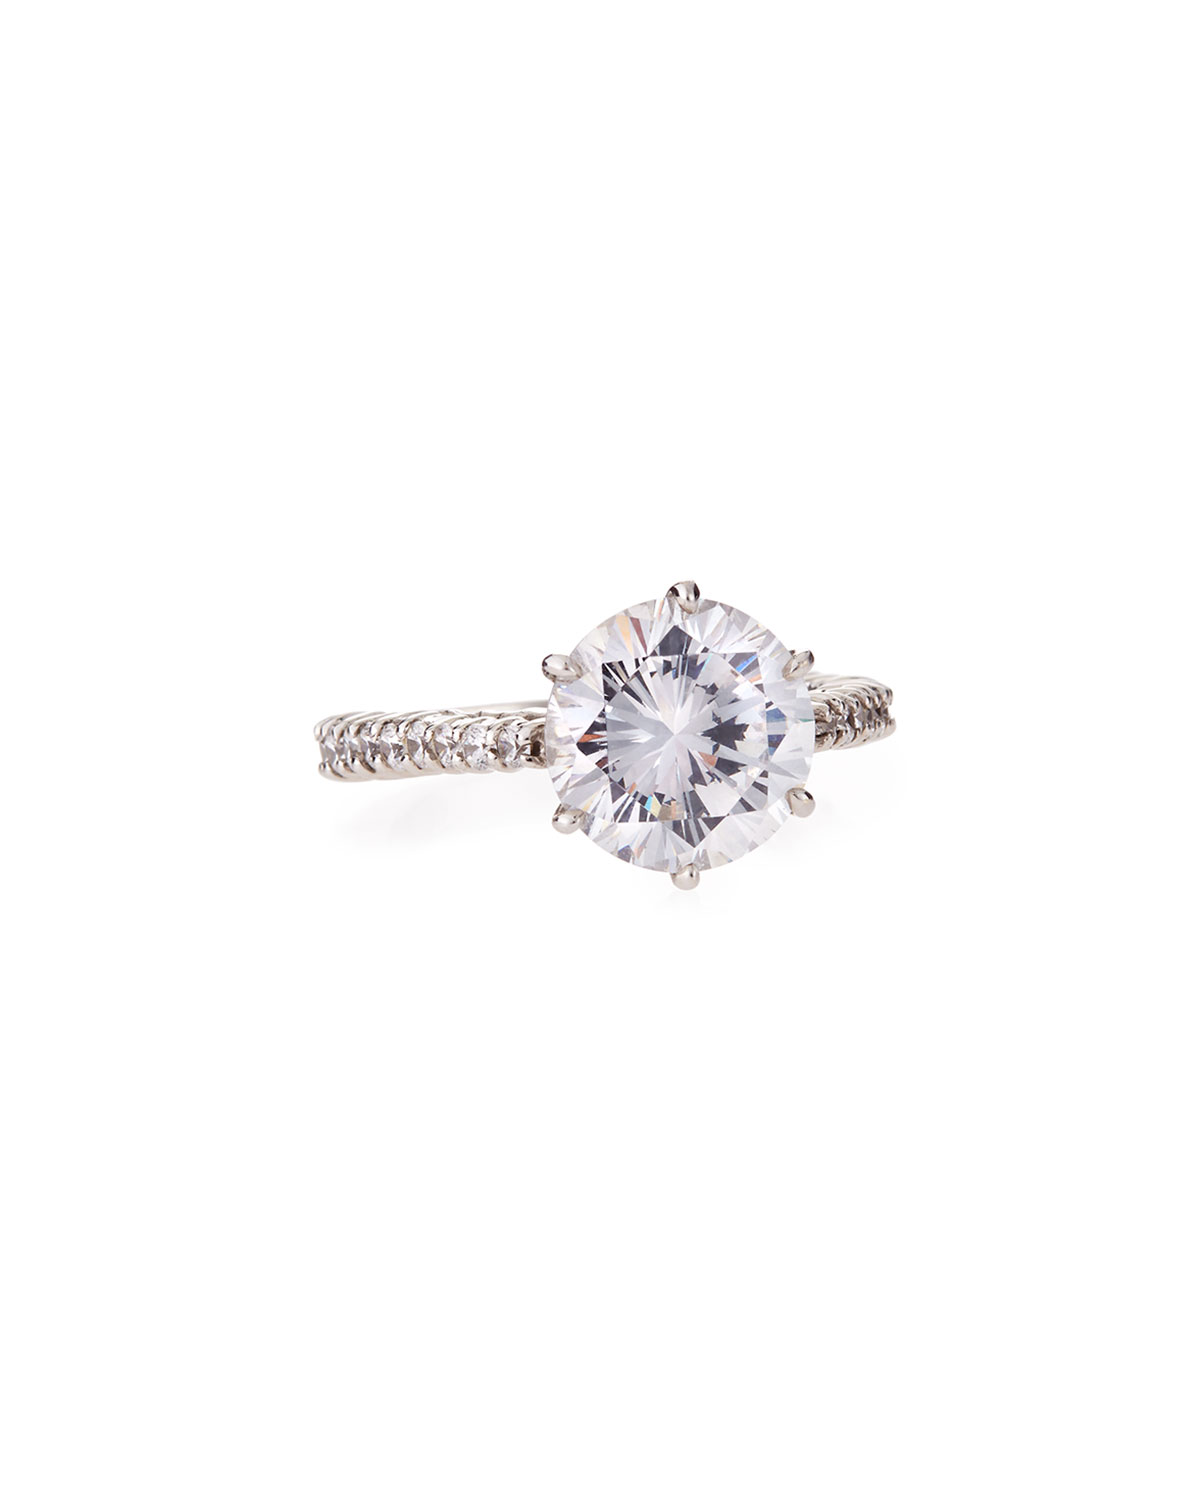 5.25 TCW Cubic Zirconia Solitaire Ring